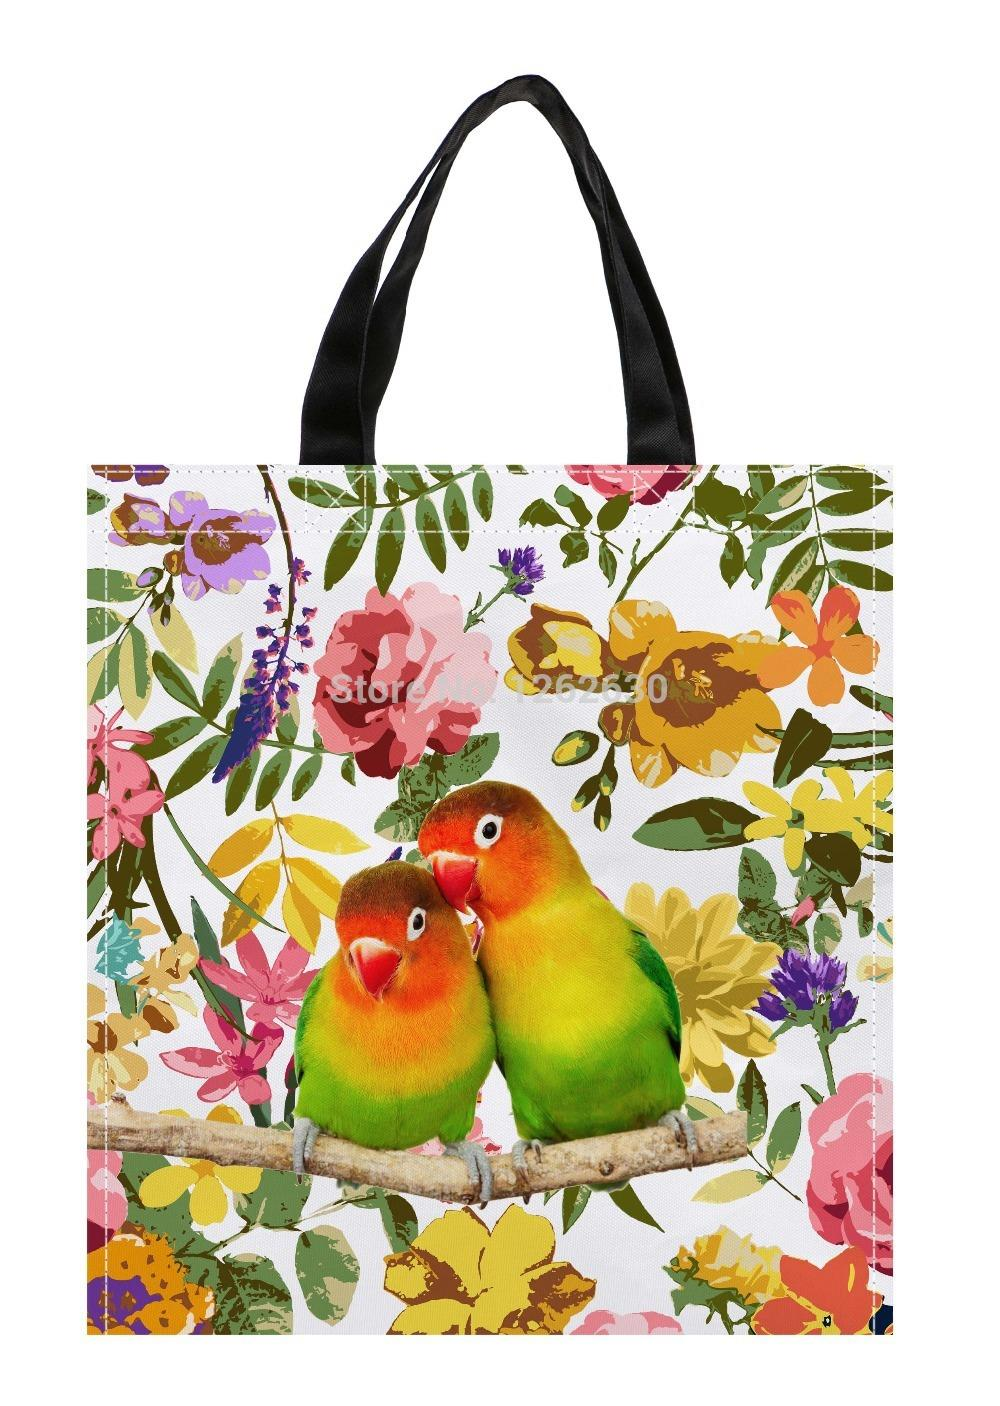 Lovebirds bird and Watercolor Floral Print Custom individual waterproof Nylon Fabric shopping bag gift bag Pack of 2(China (Mainland))